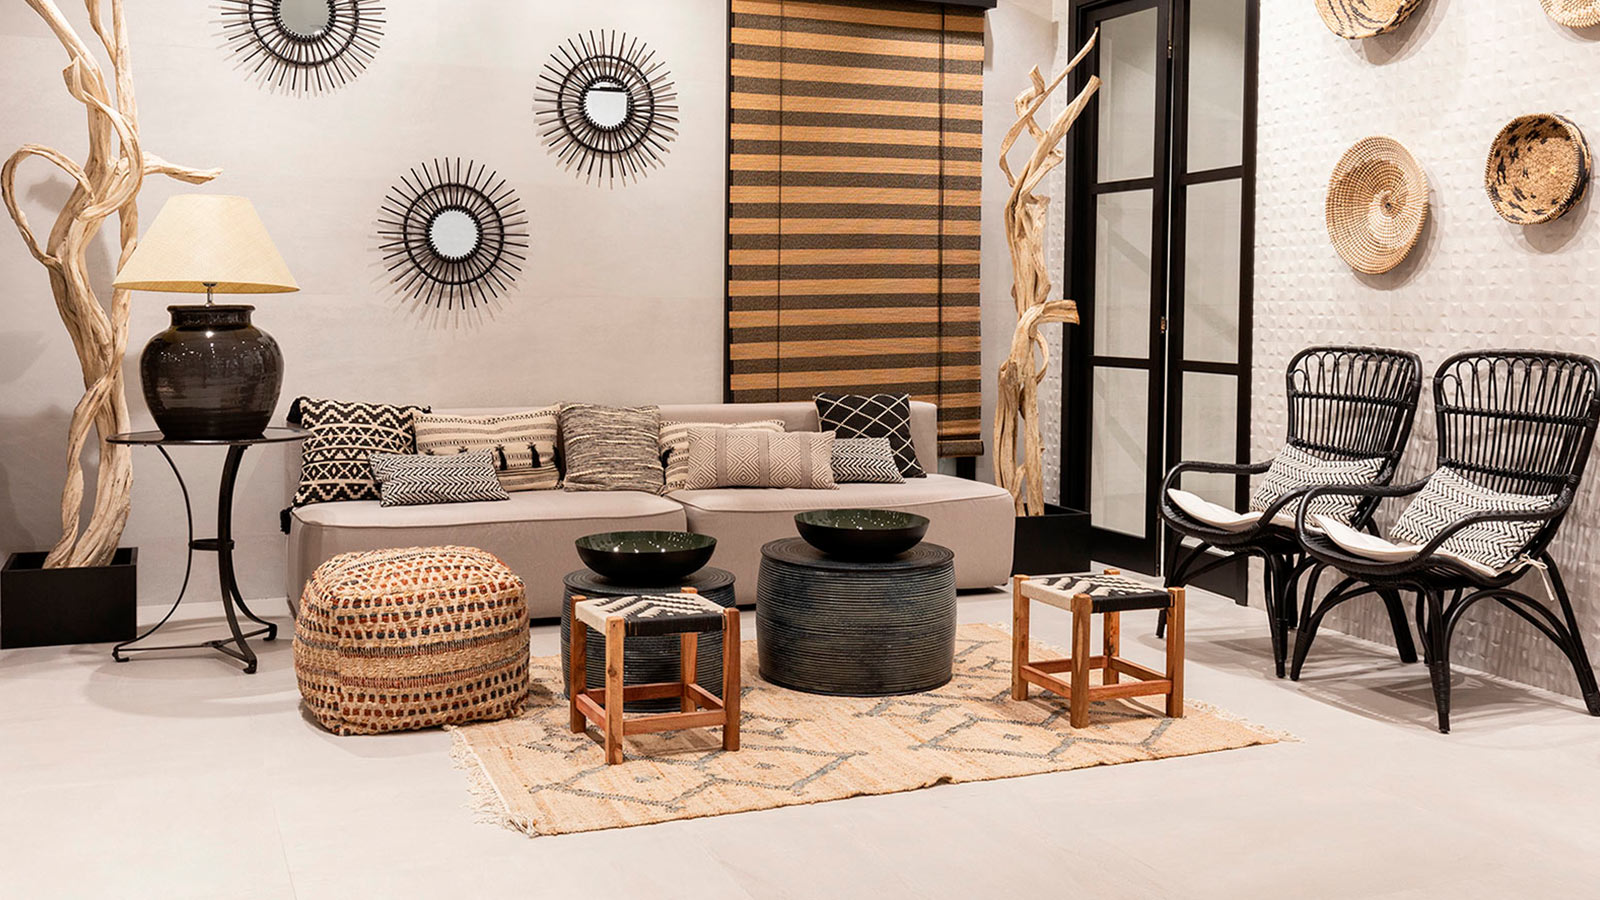 Moroccan décor ideas for your home